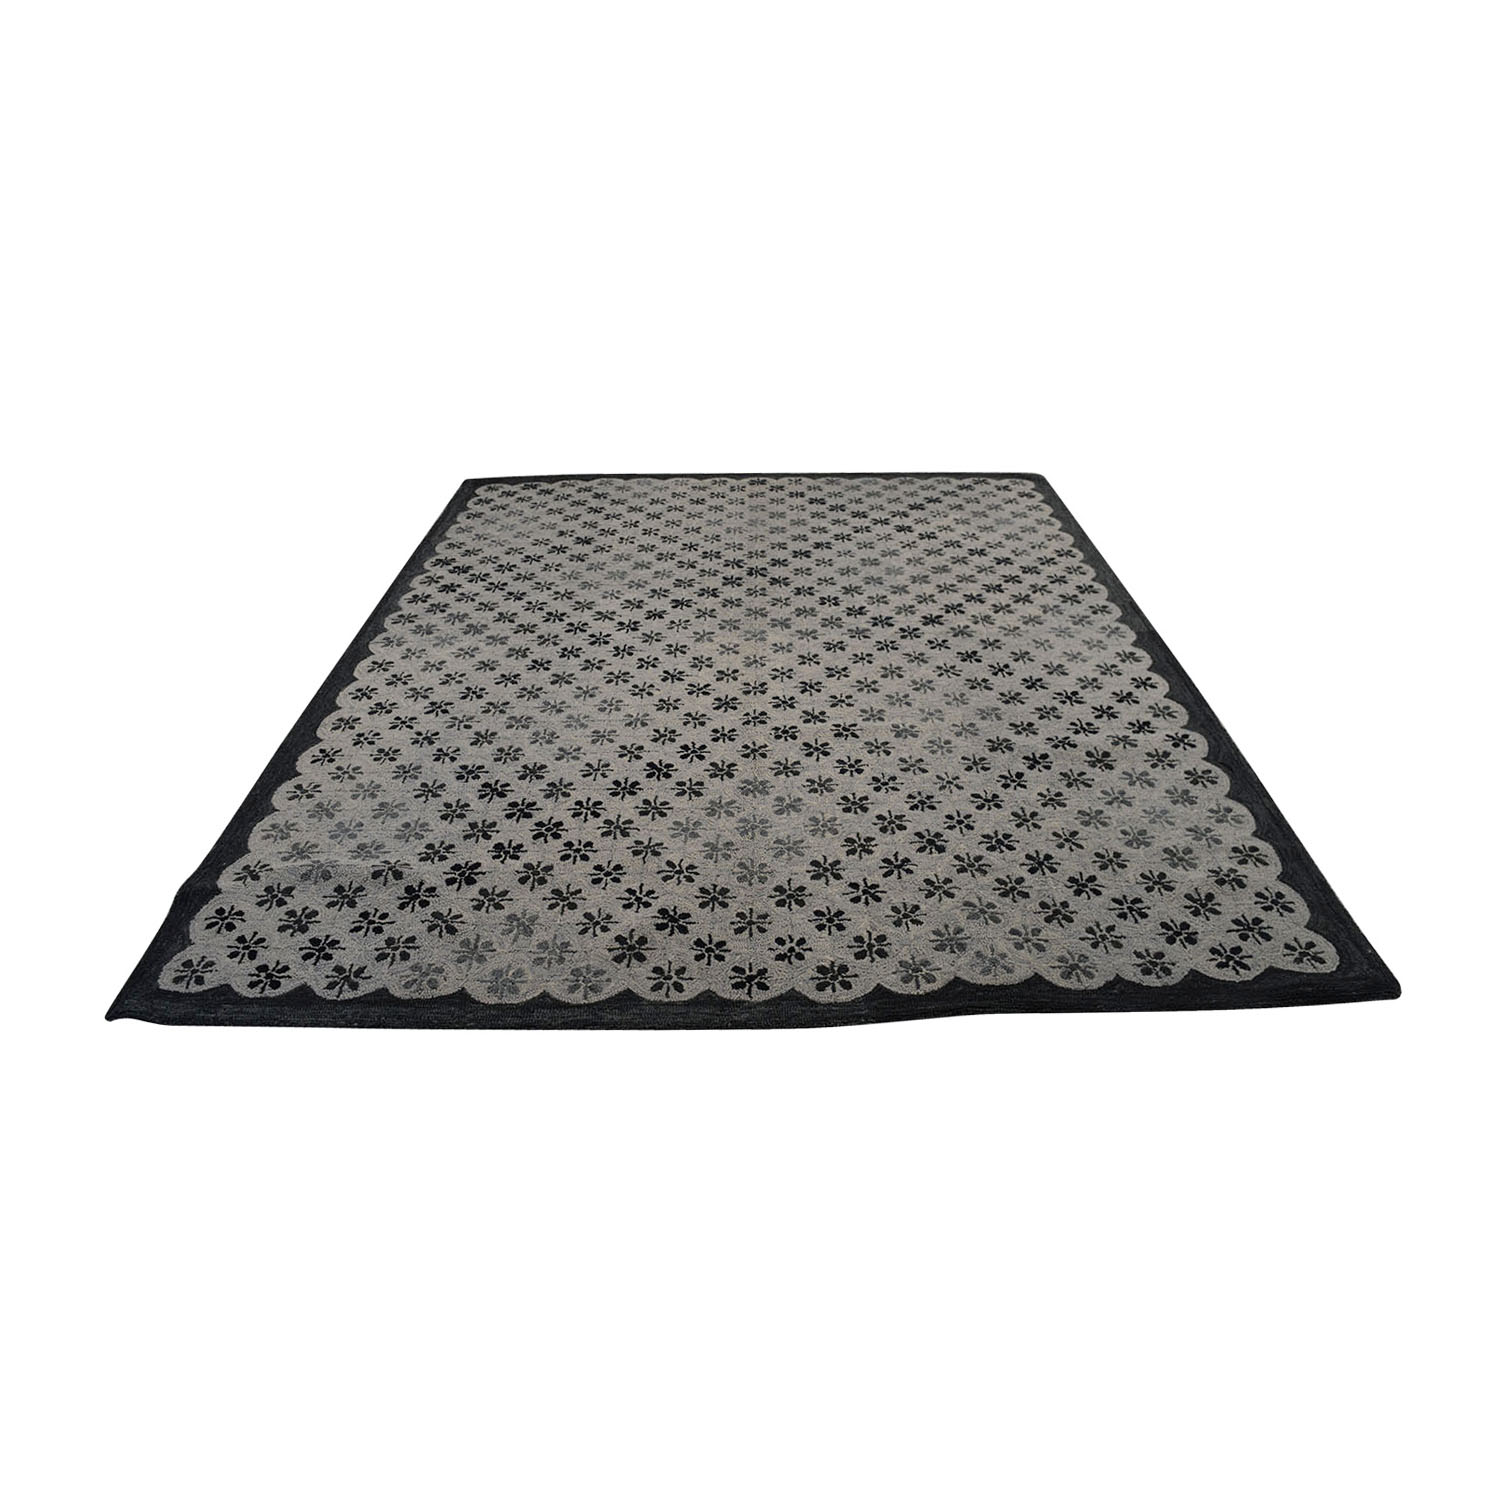 Obeetee Obeetee Gray and Black Asterisk Rug on sale